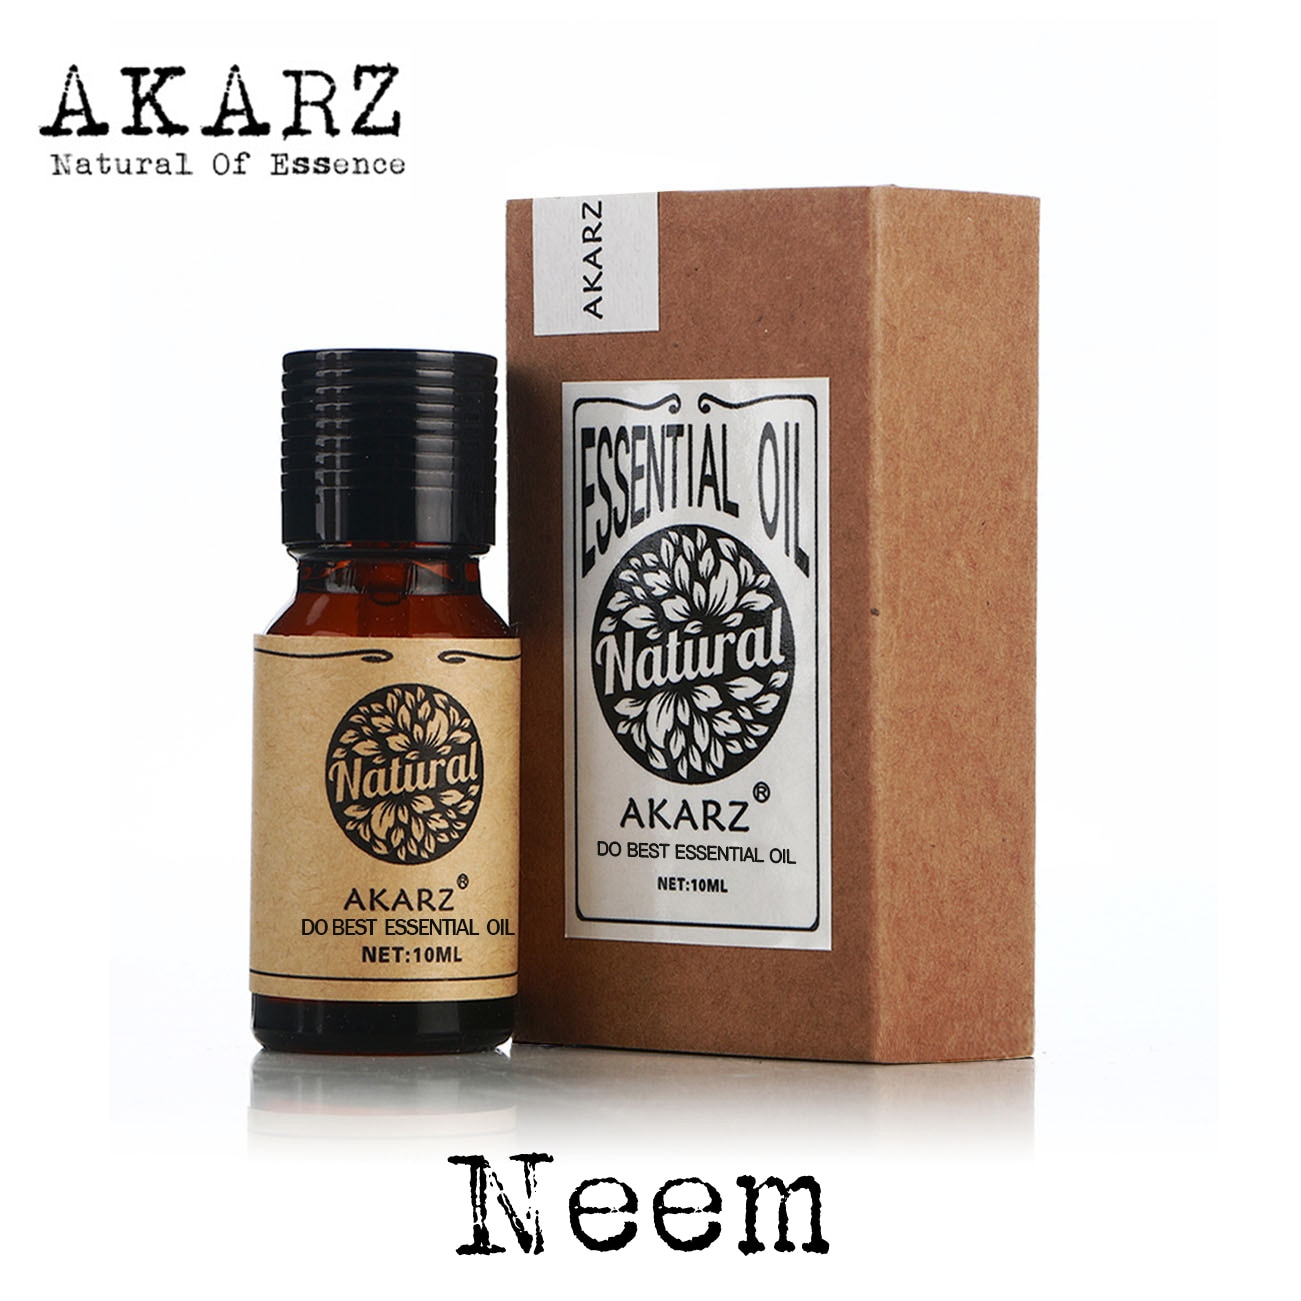 AKARZ Famous brand natural Neem essential oil Insecticidal Disinfection Inhibit the growth of insect